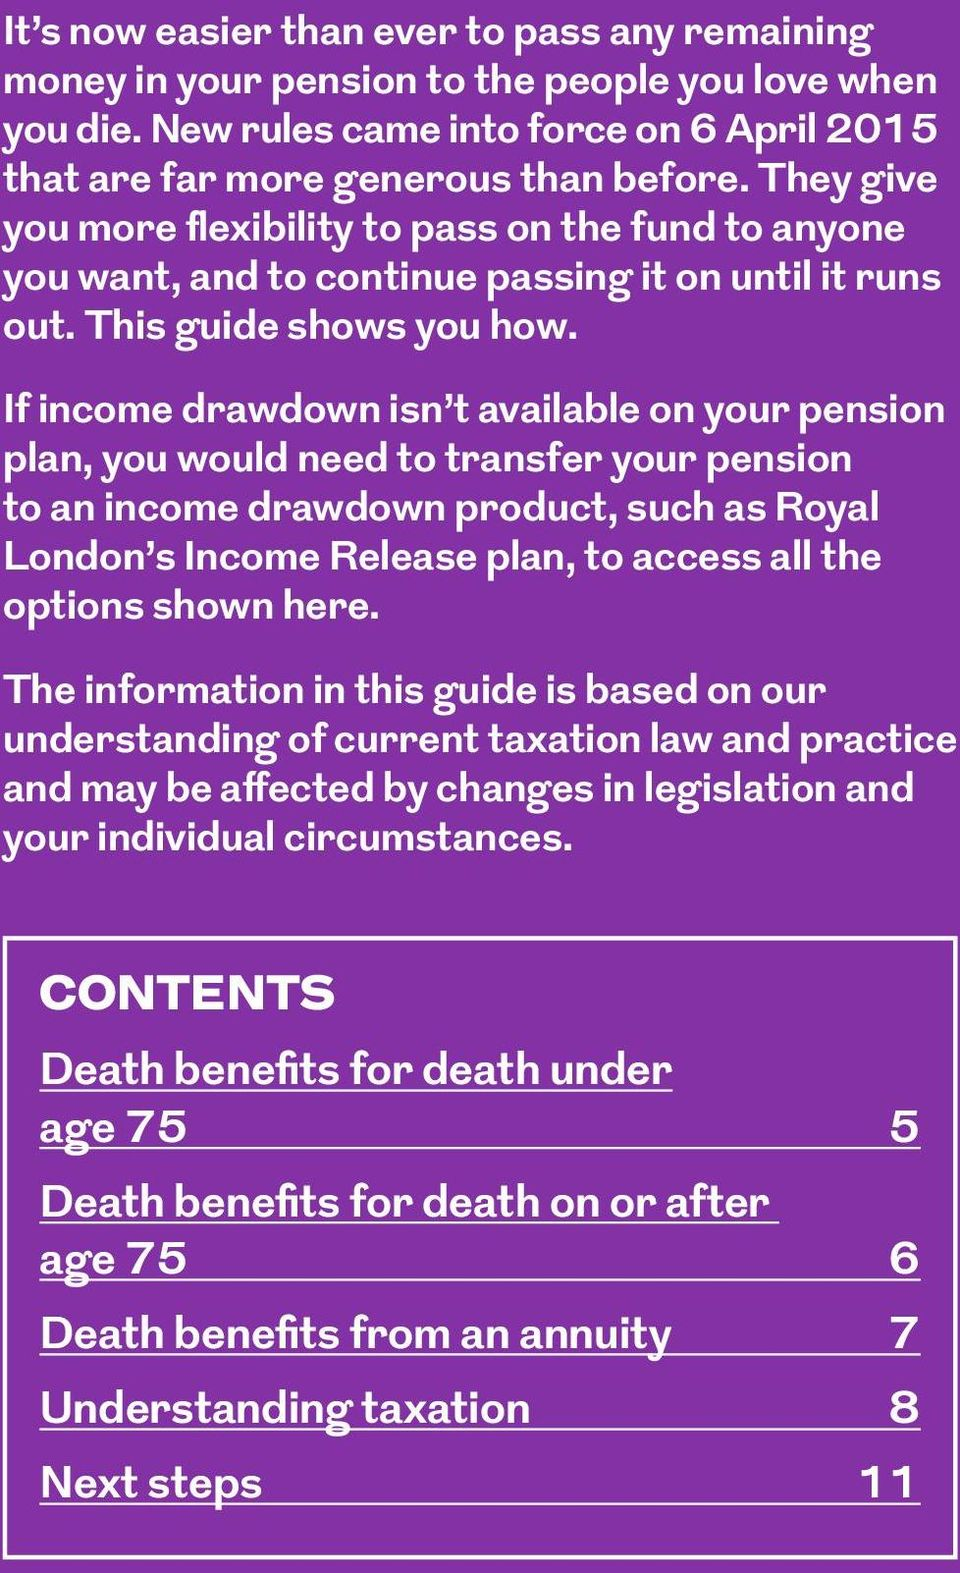 If income drawdown isn t available on your pension plan, you would need to transfer your pension to an income drawdown product, such as Royal London s Income Release plan, to access all the options